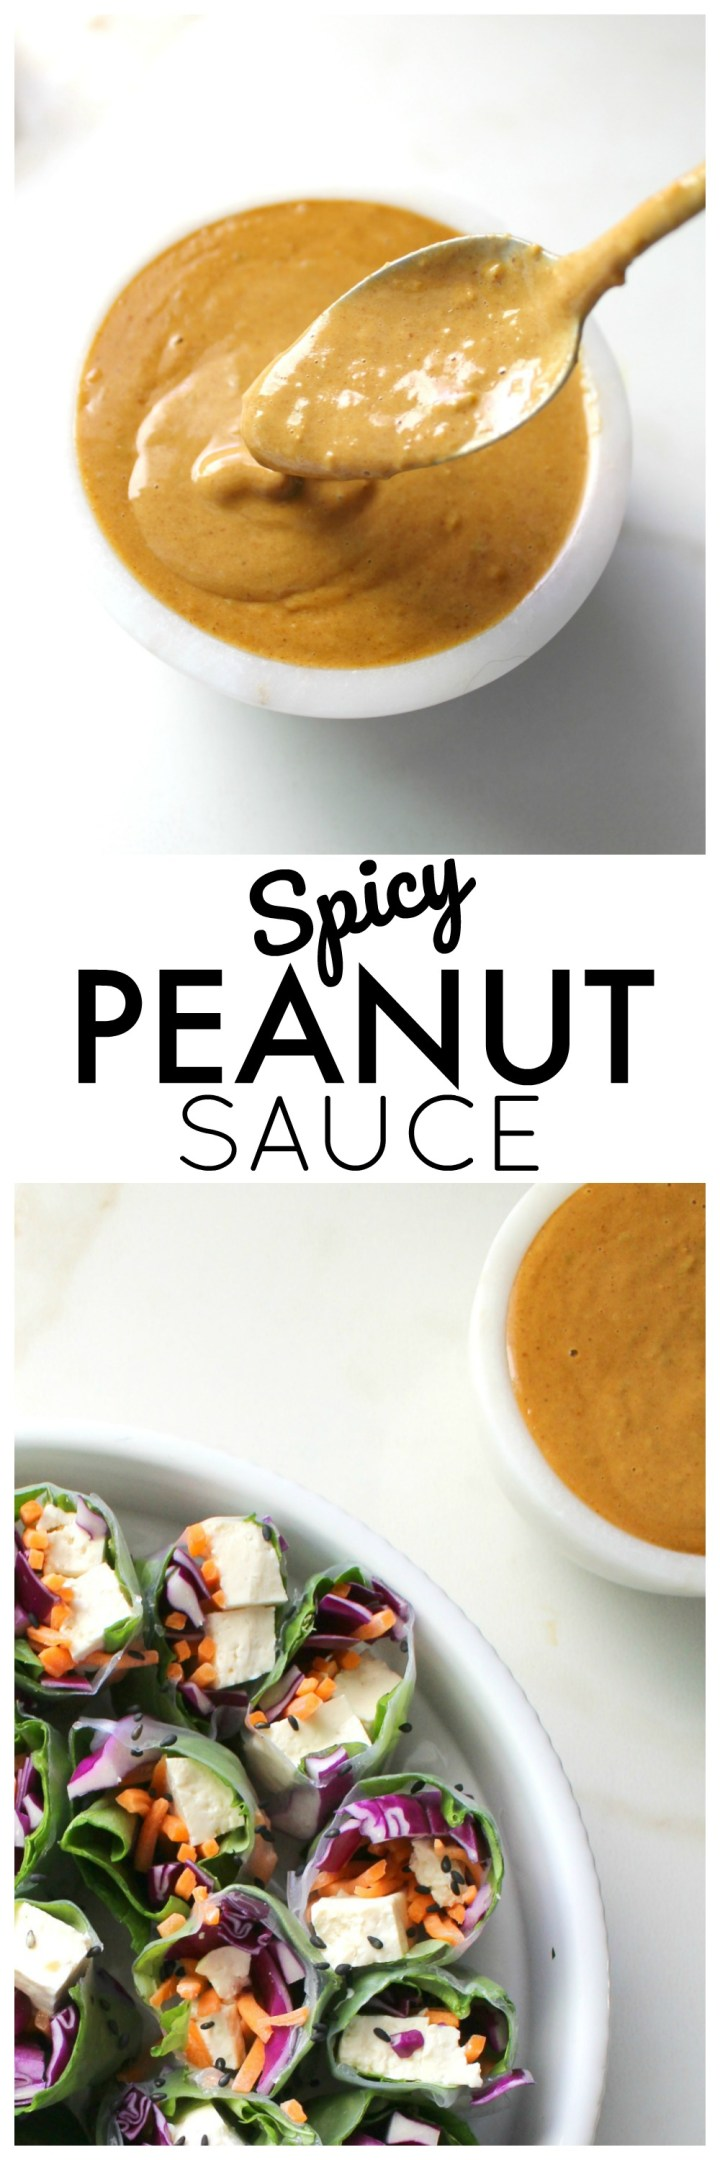 The perfect dip or dressing for salads, spring rolls or rice paper rolls - this Spicy Peanut Sauce is a delicious blend of flavors that is finger licking good | ThisSavoryVegan.com #vegan #peanutsauce #dressing